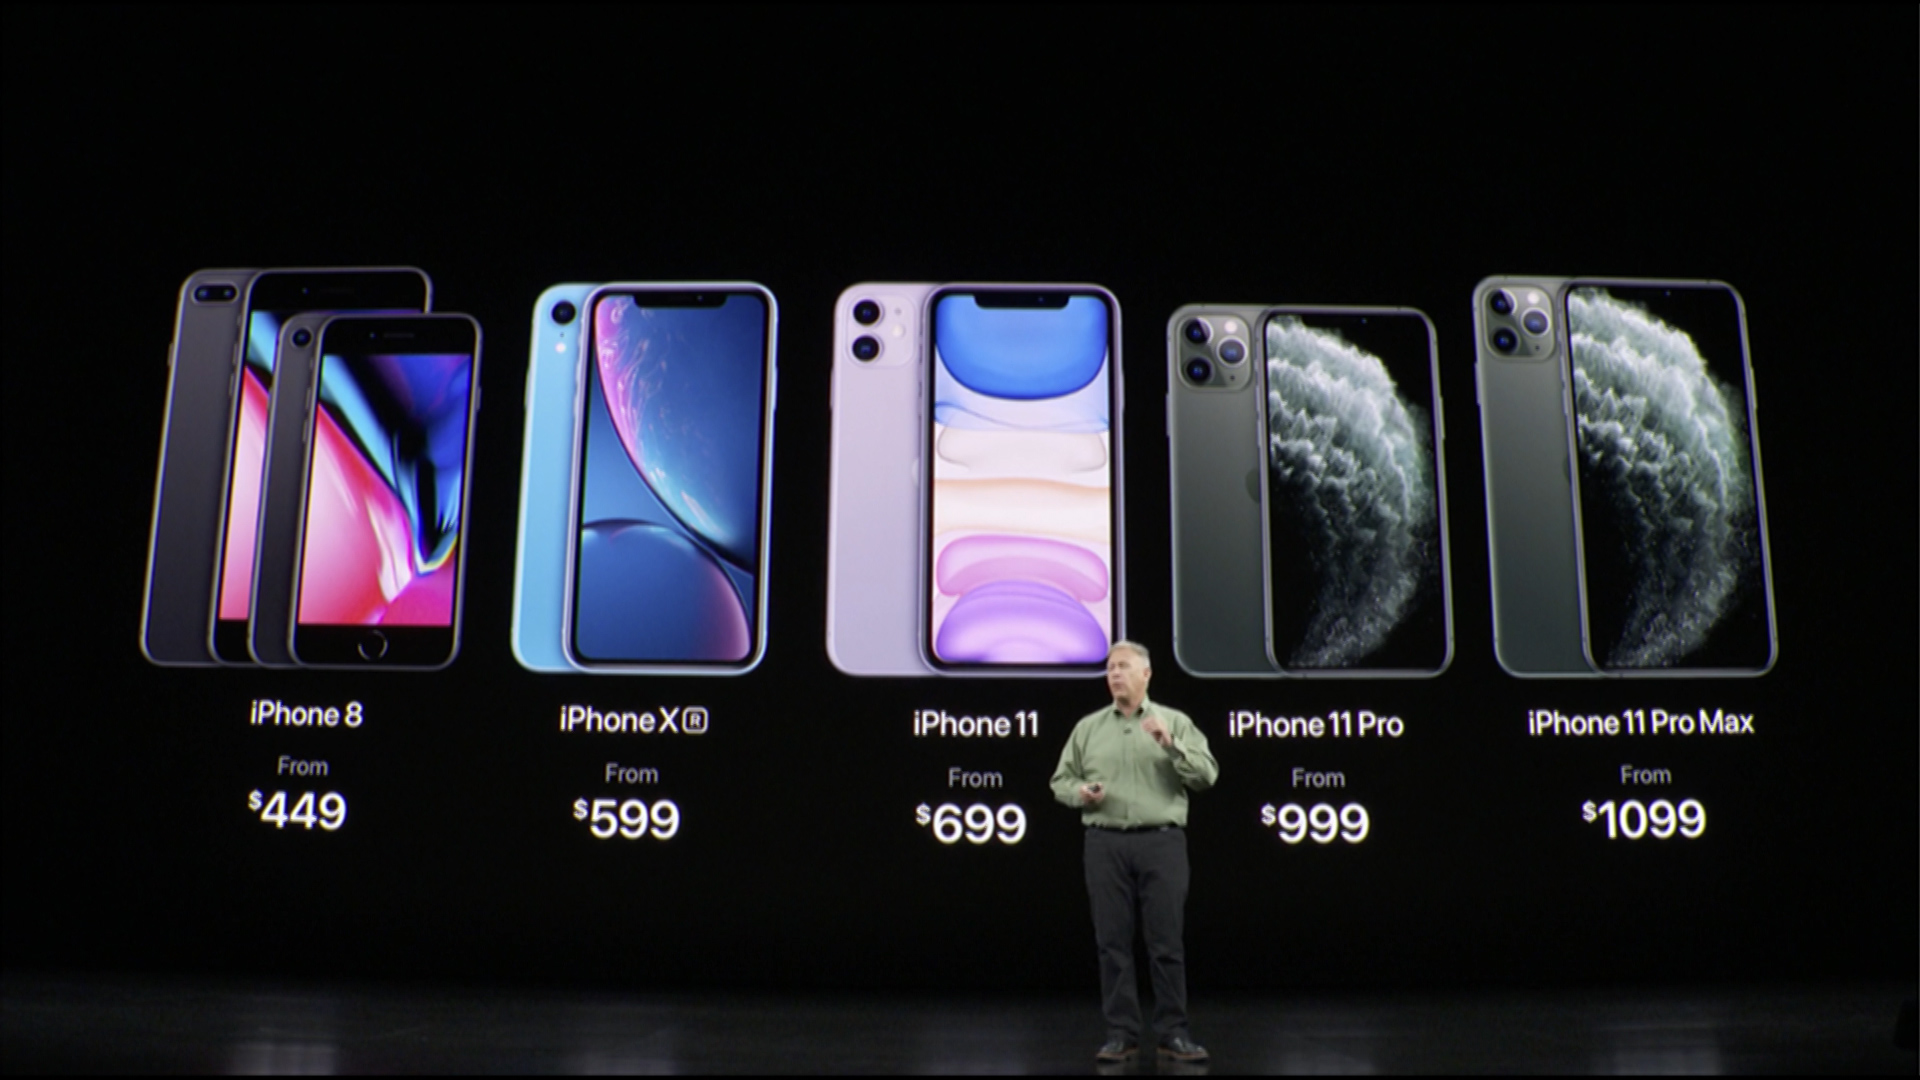 Apple launches new devices iPhone 11, Pro, iPad, Apple Watch, and services such as Apple TV+